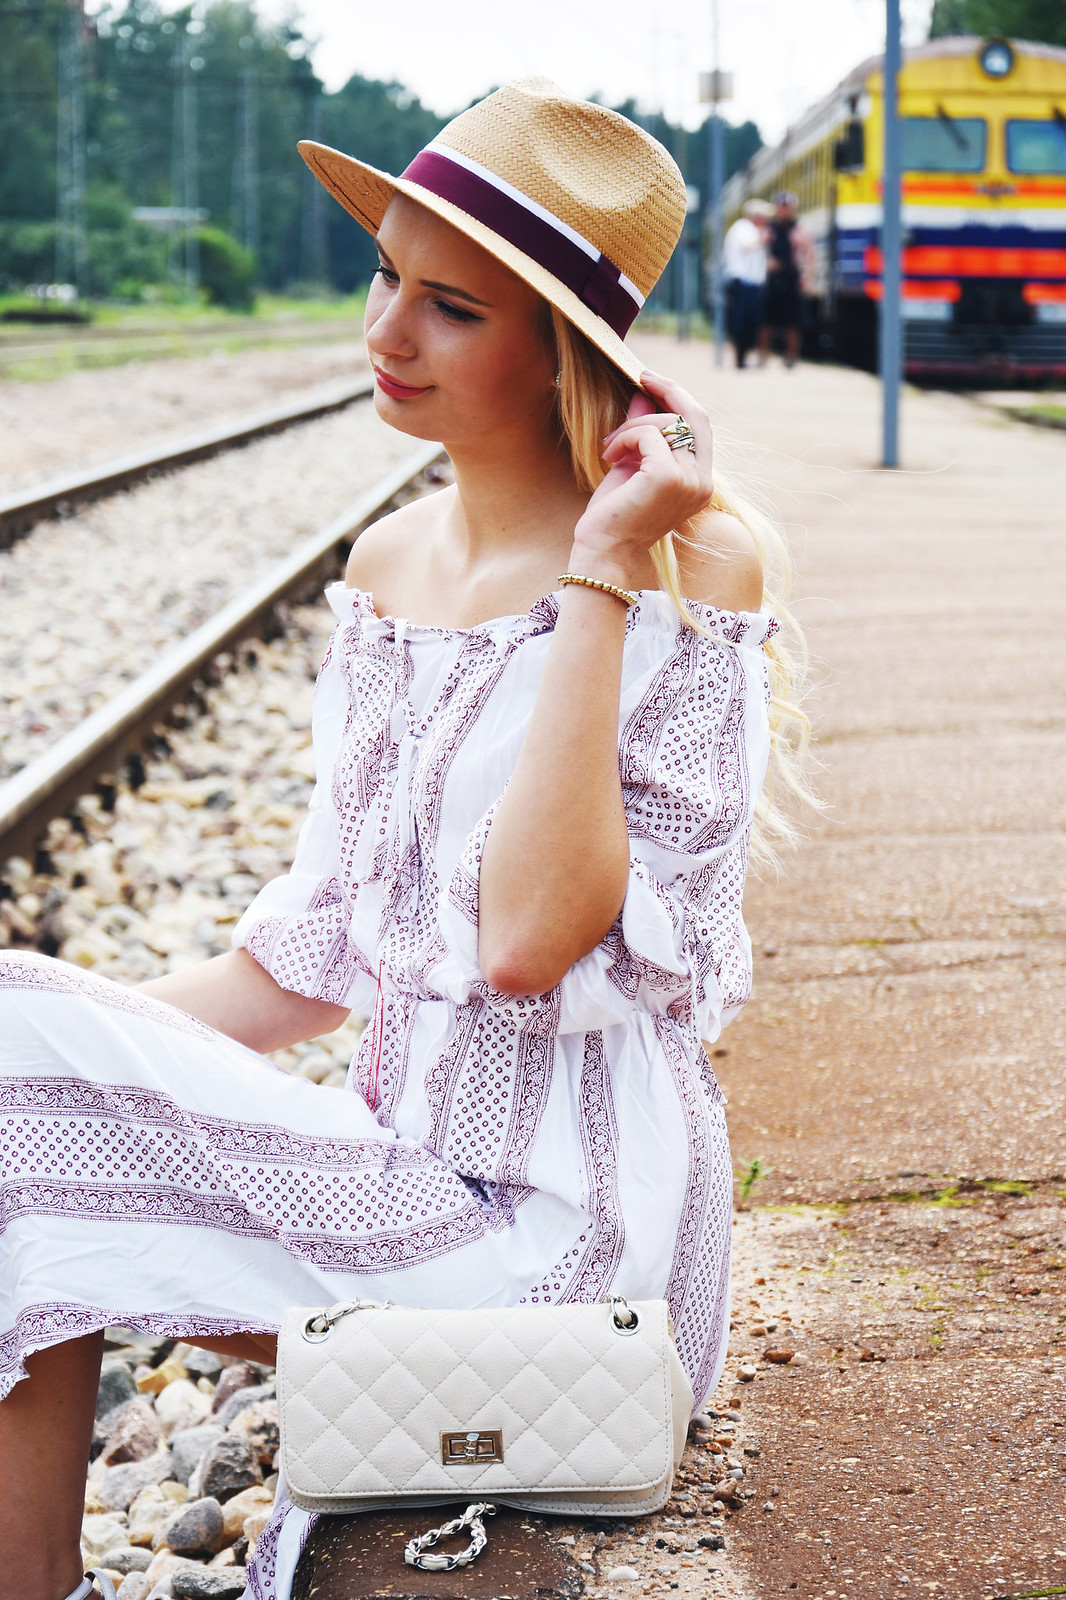 Latvian fashion and beauty blogger